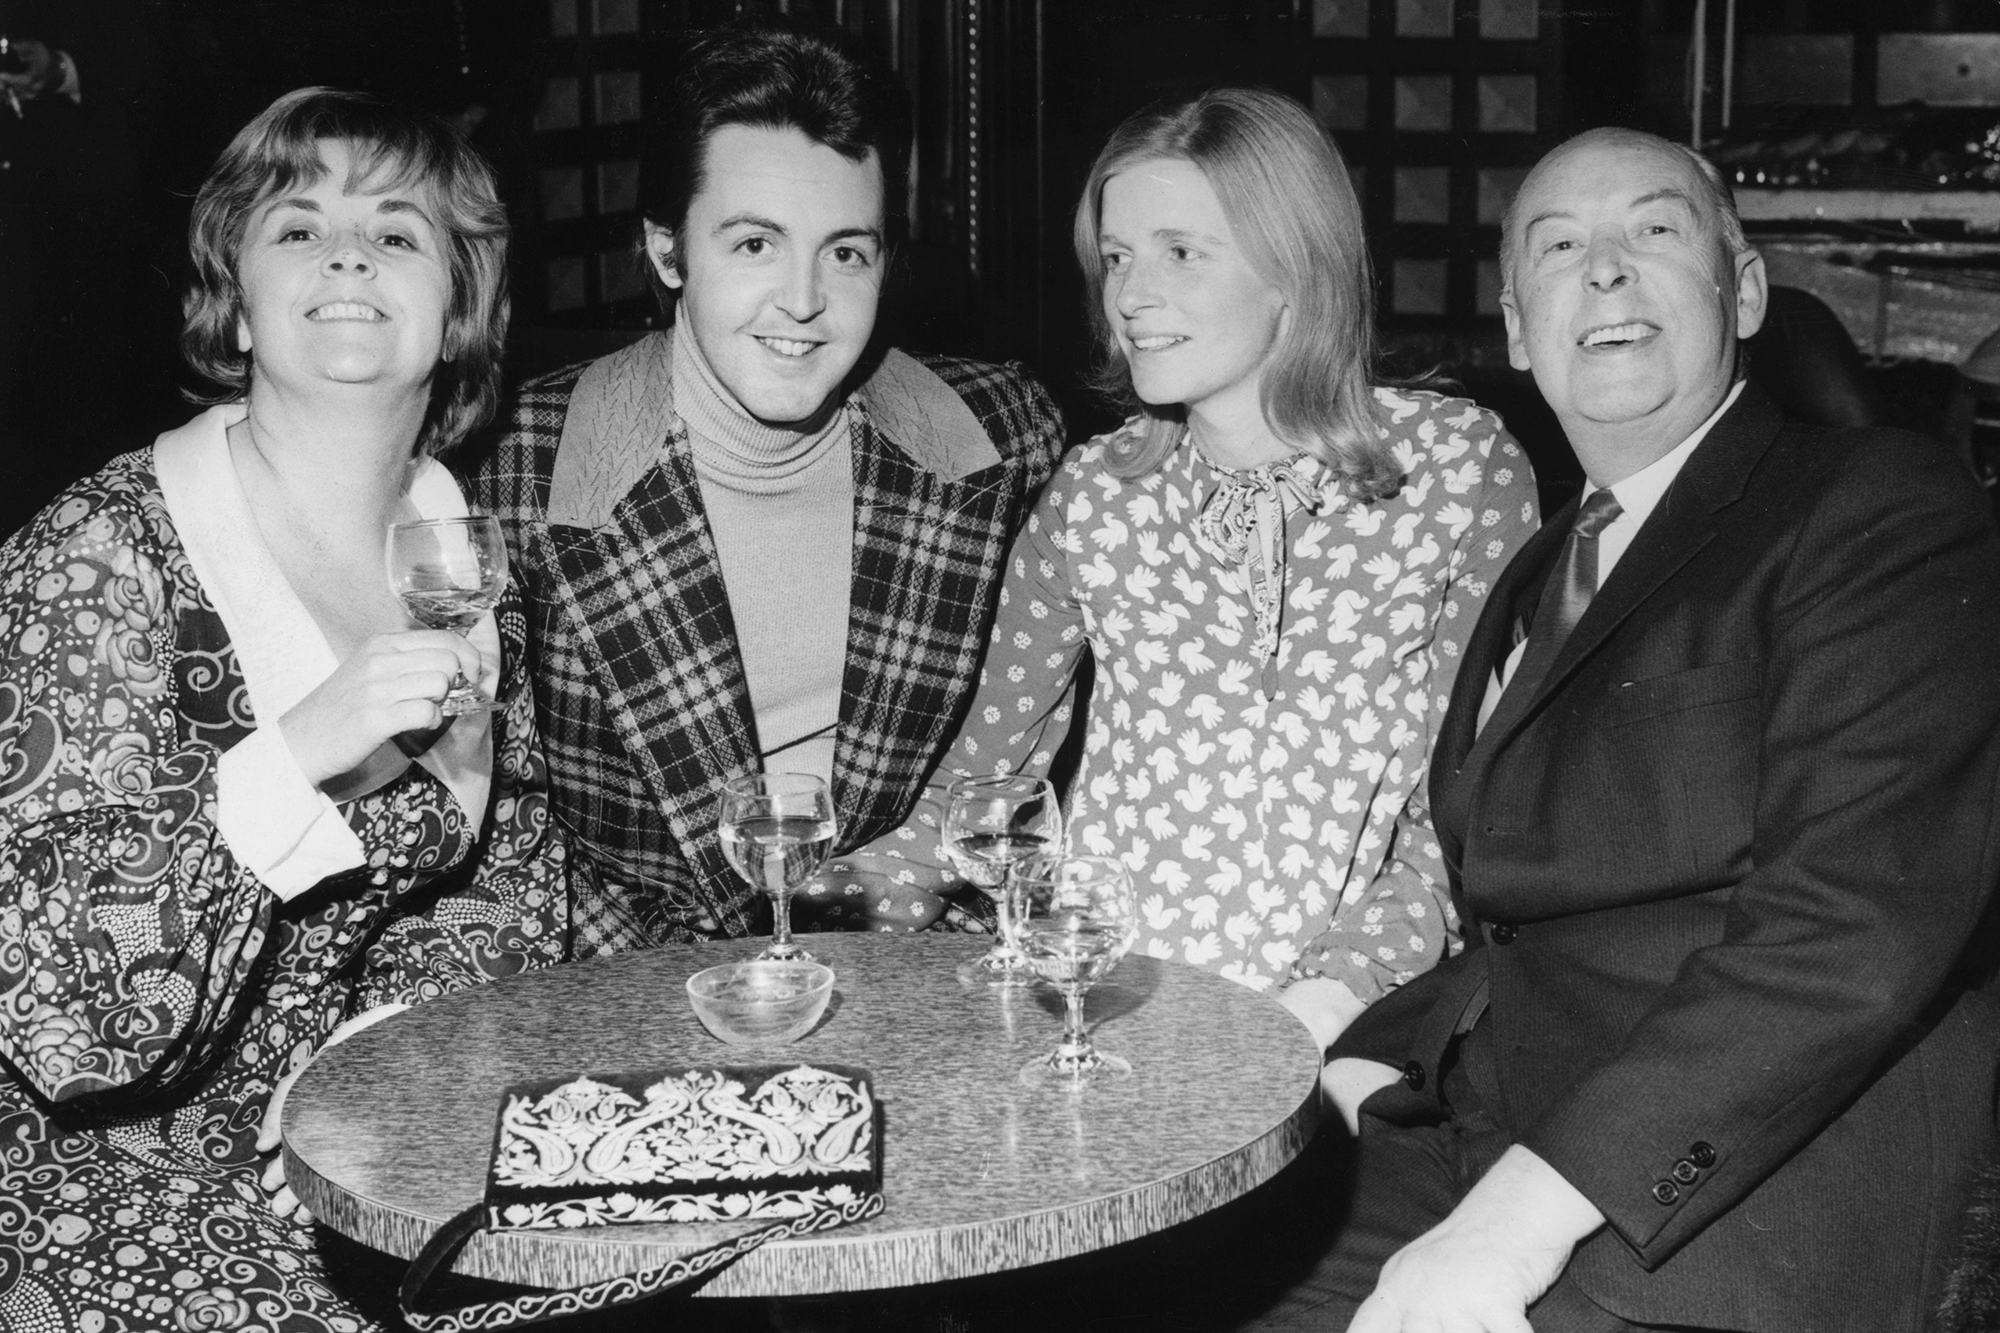 9th November 1971: Former Beatle Paul McCartney with his wife Linda (1941 - 1998), his father James and his stepmother Angela.